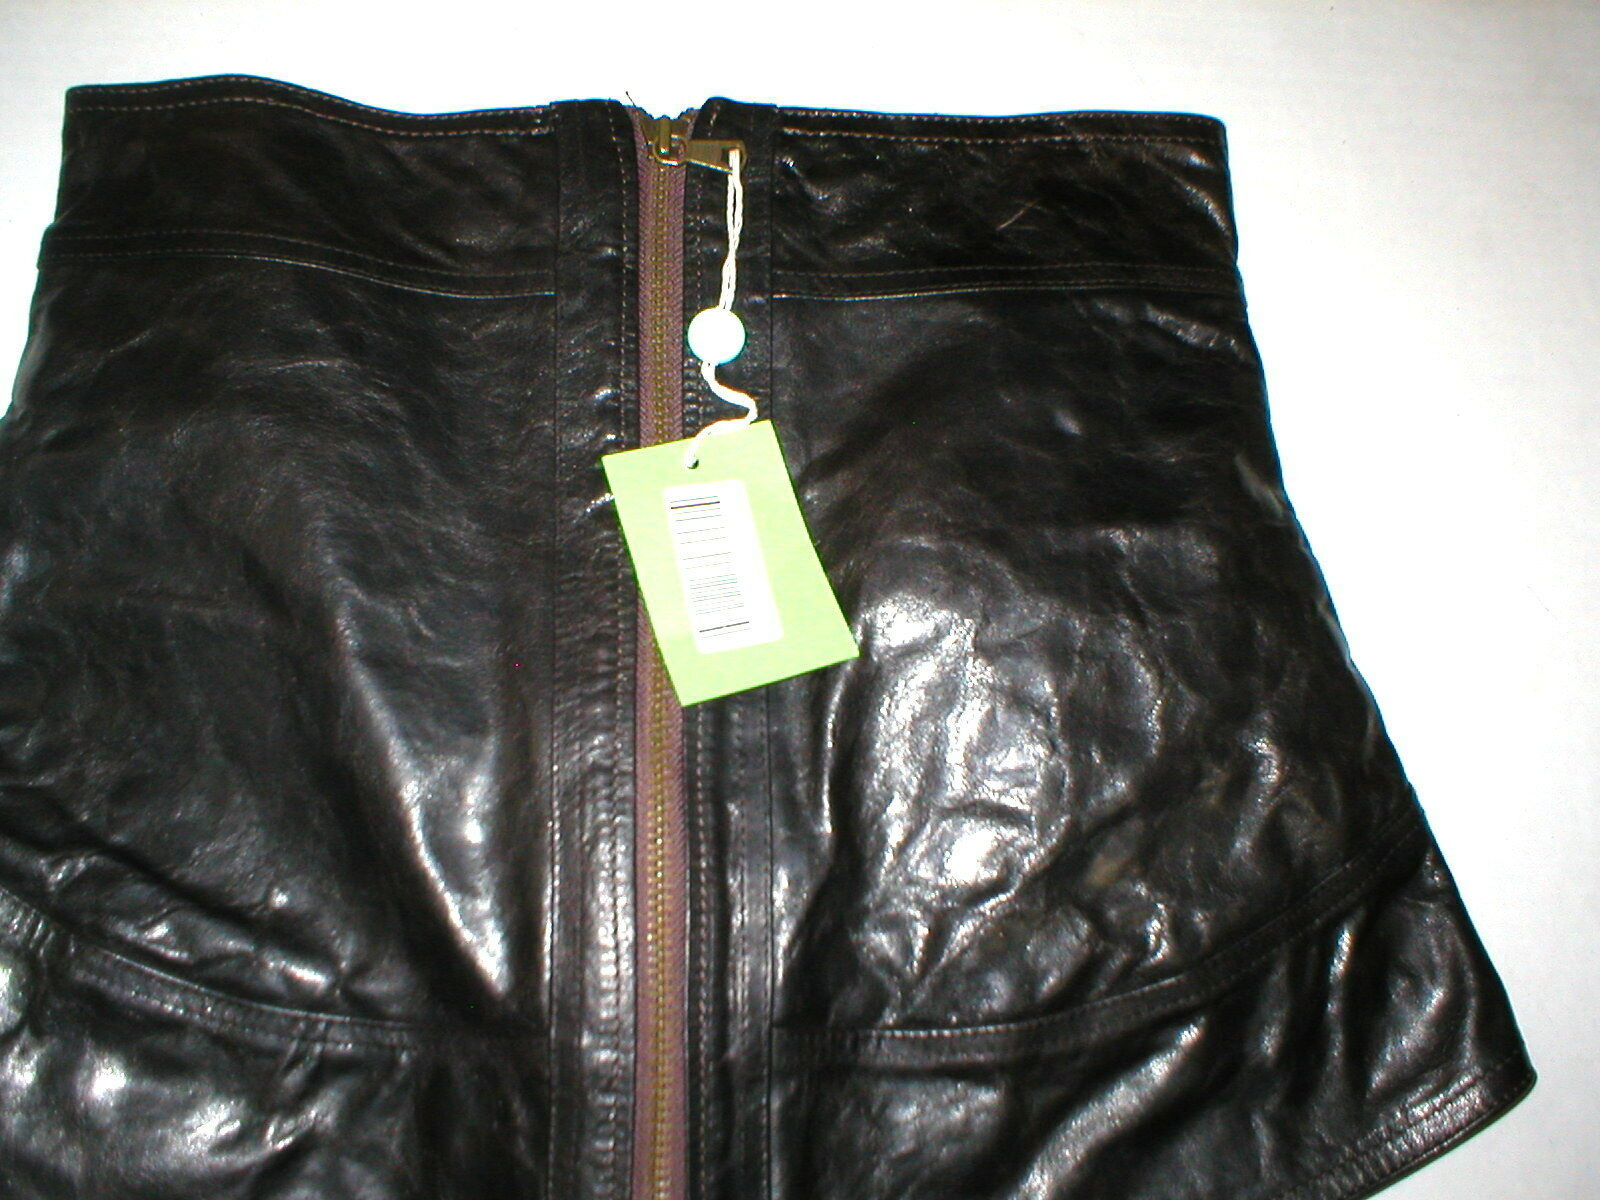 New NWT Womens 8 Leather Skirt Designer Front Zipper Black Italy 44 Colle Privee